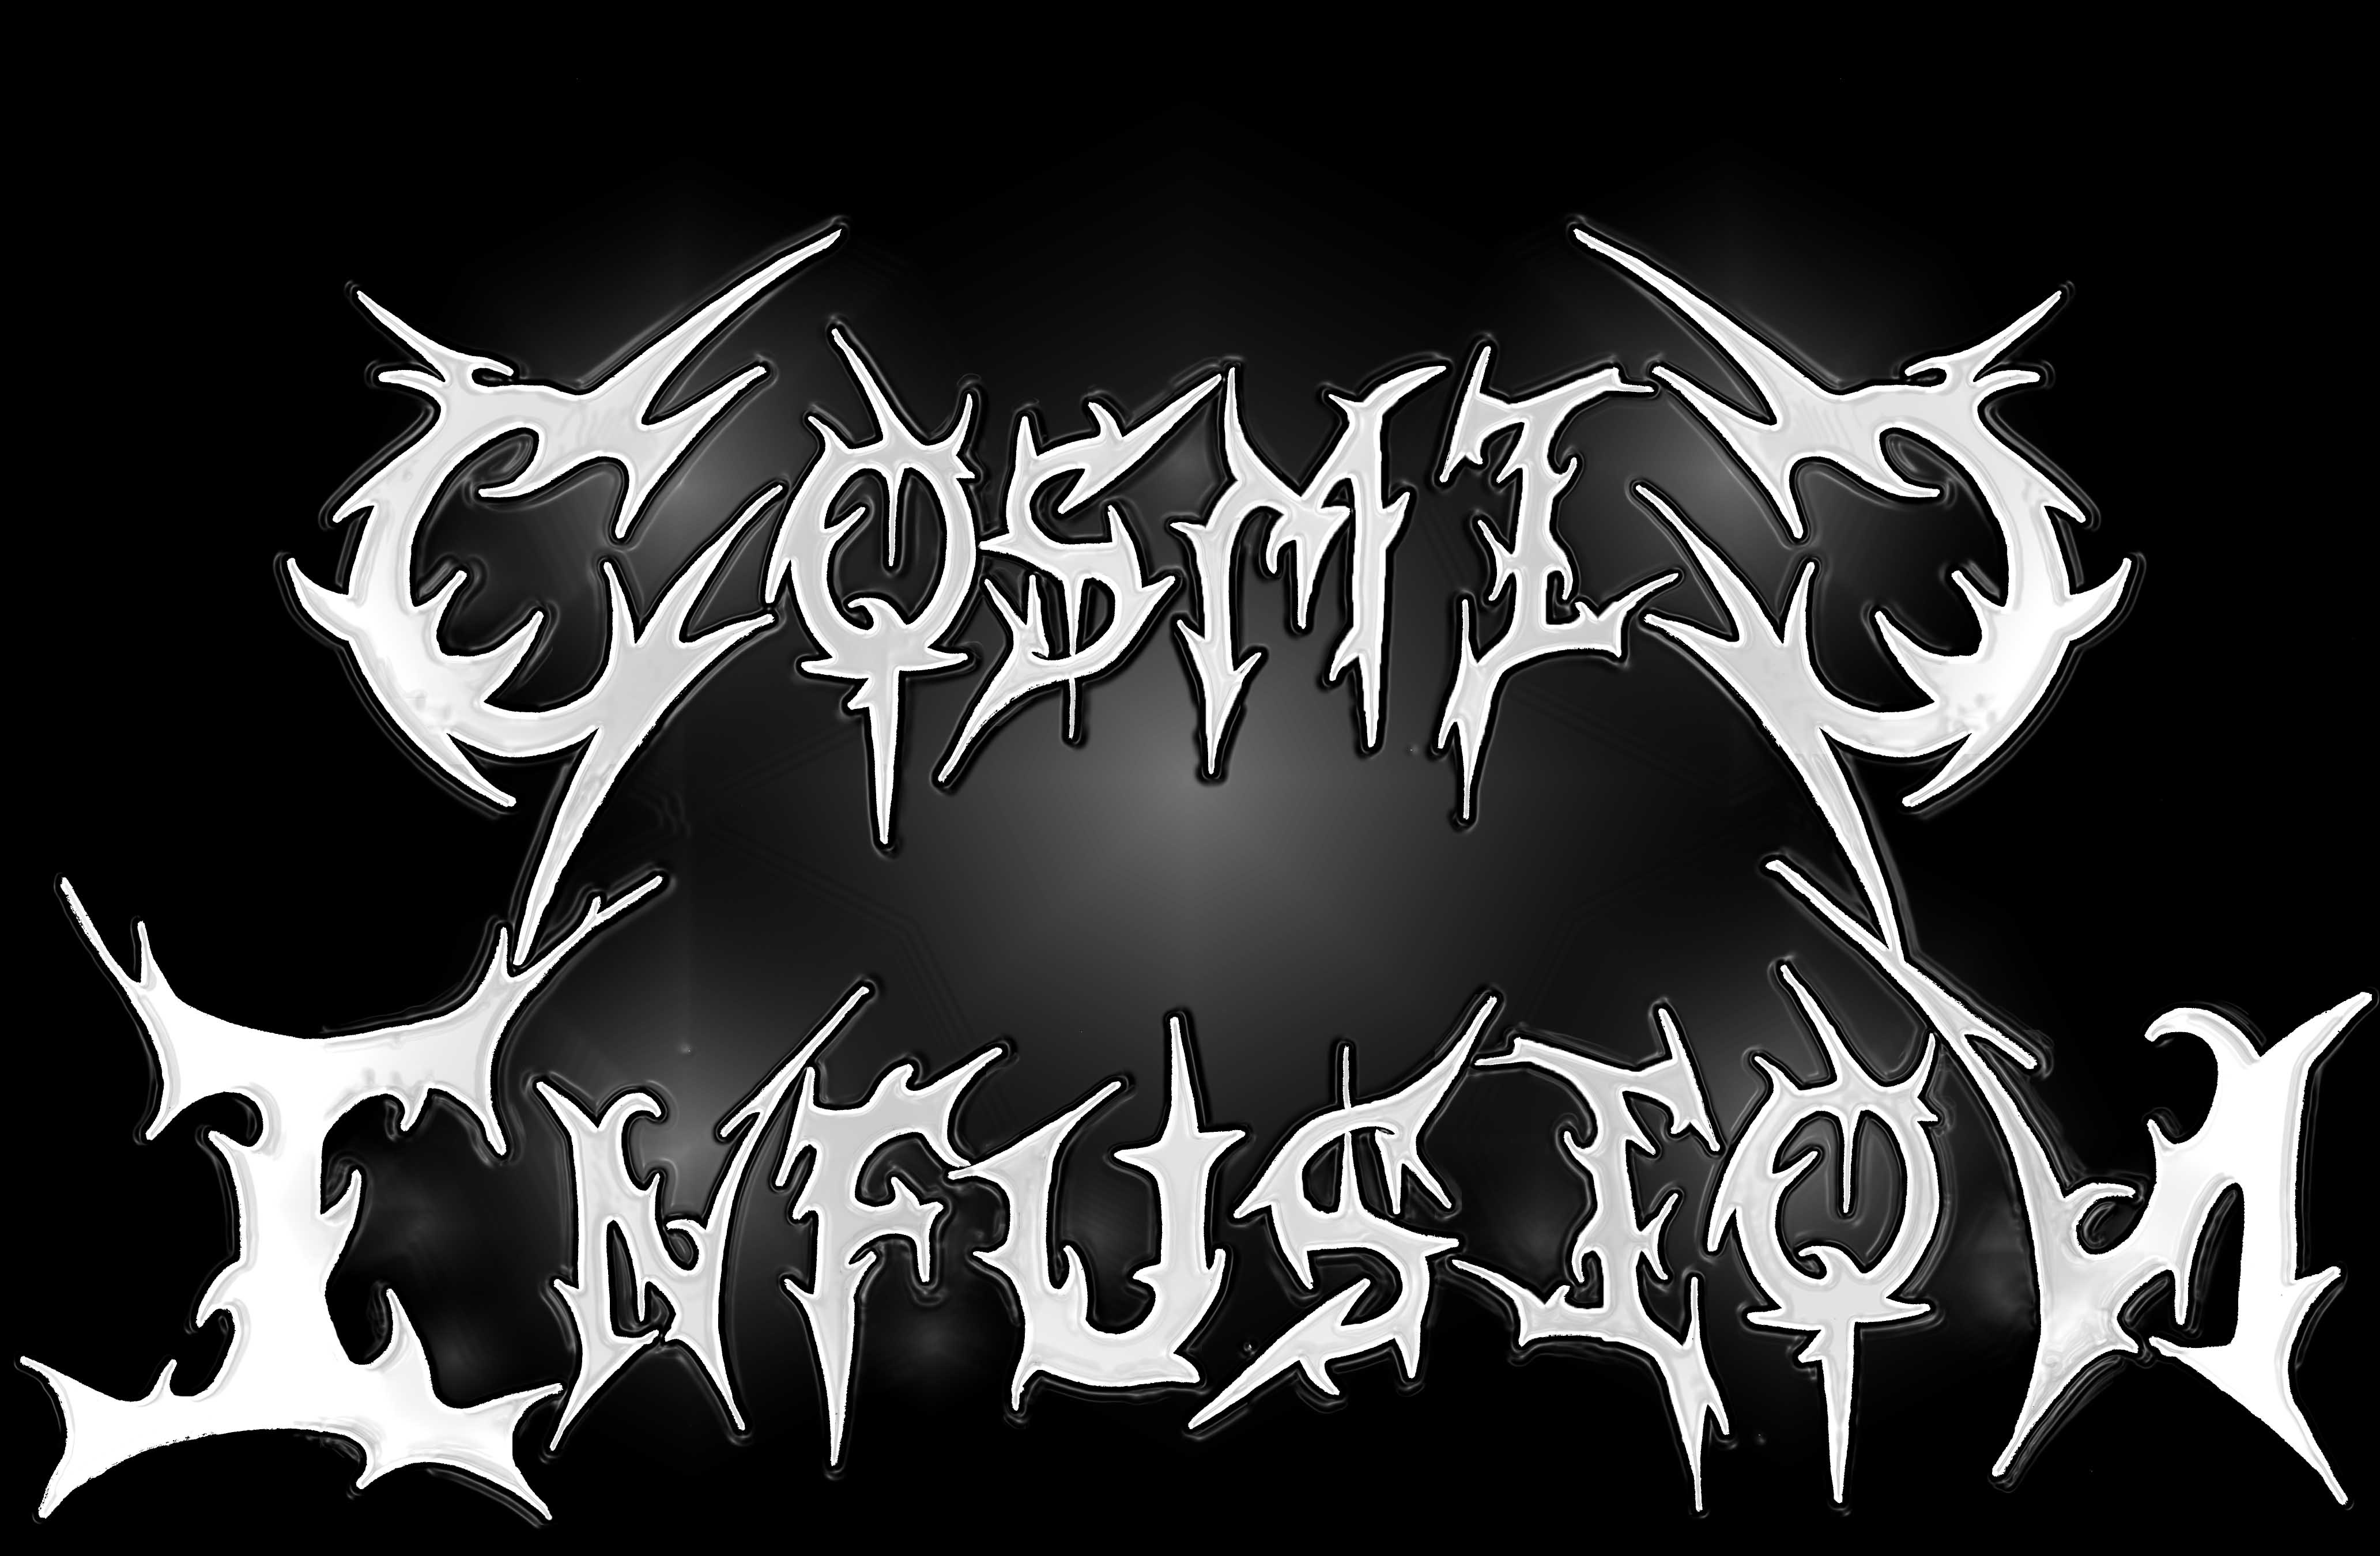 Cosmic Infusion releases their new single